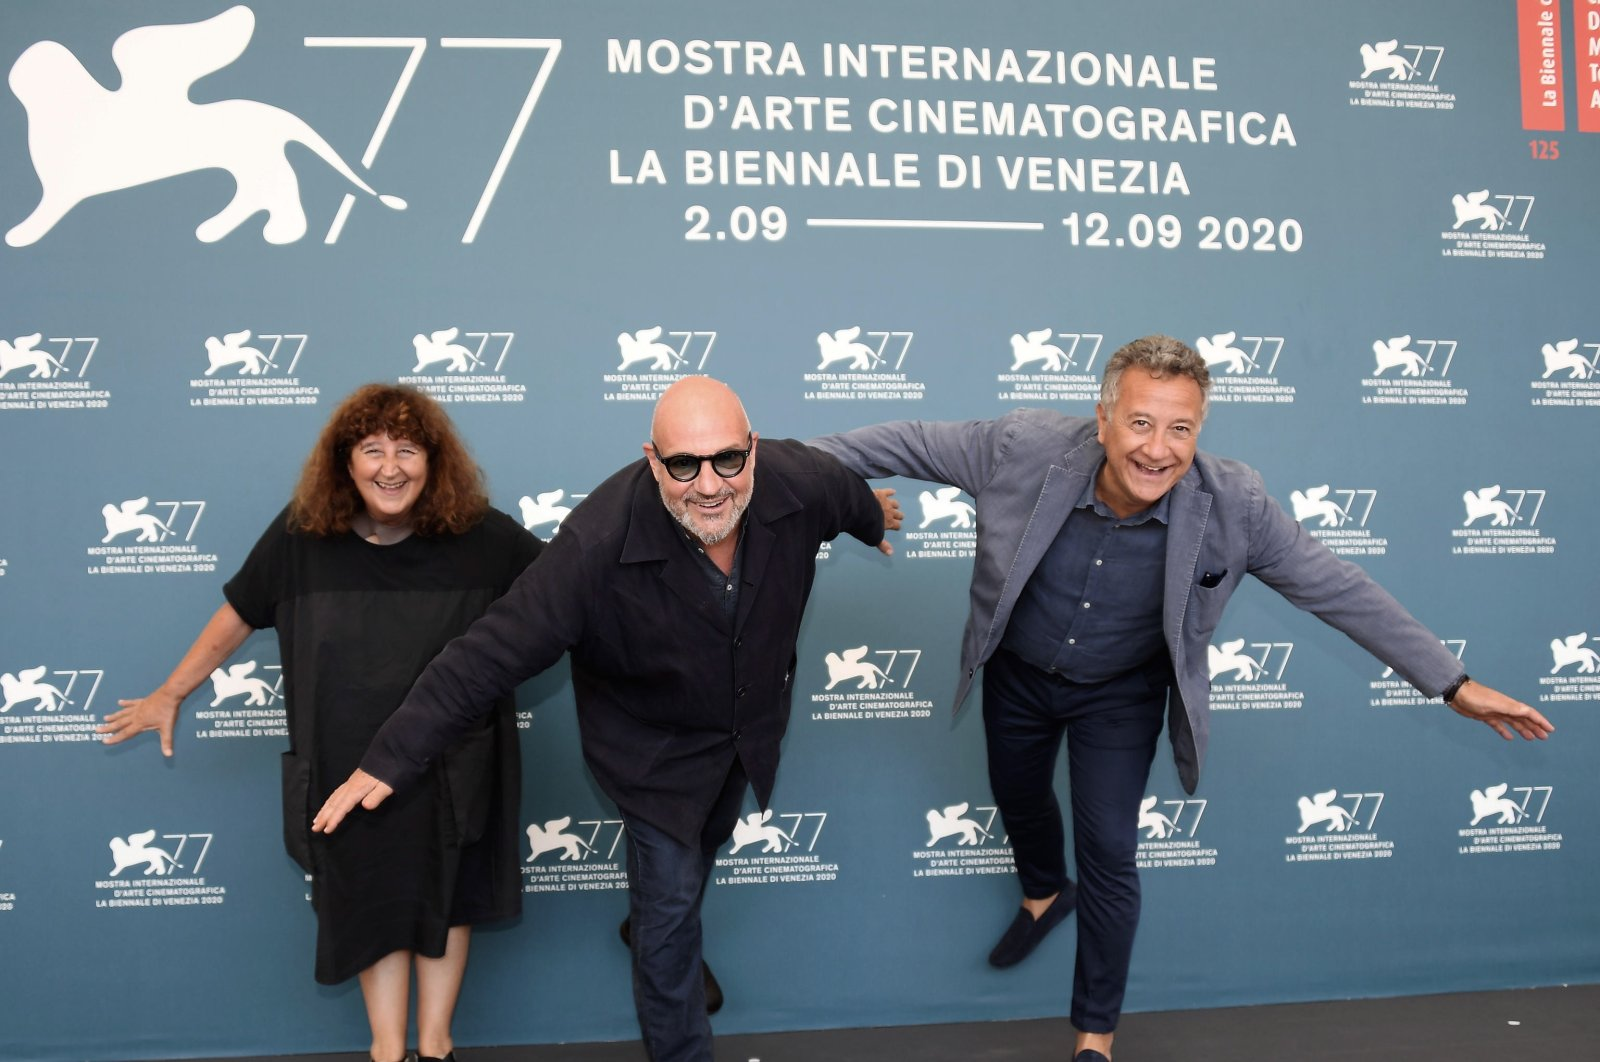 """Italian filmmaker Gianfranco Rosi (C), Italian producers Donatella Palermo (L) and Paolo Del Brocco (R), pose at a photocall for """"Notturno"""" during the 77th annual Venice International Film Festival, in Venice, Italy, Sept. 8, 2020. (EPA Photo)"""